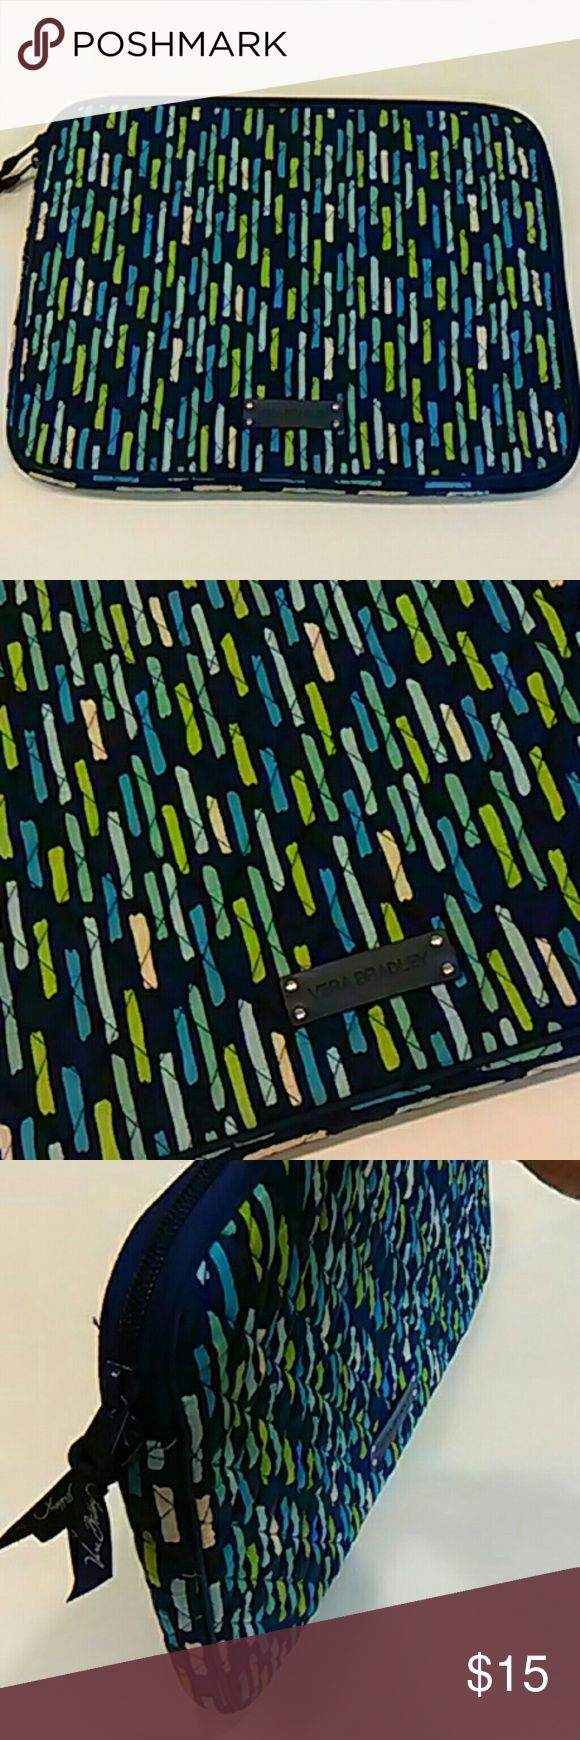 Laptop case Vera Bradley Katalina Showers This is a very nice padded laptop carrying case in Katalina Showers, in shades of blues and greens.  The zipper runs from the top left of the bag, across the top, and all the way down the right side.  Inside, there is a slip pocket with a flap that closes with Velcro.  There is evidence that a laptop rubbed against the pocket inside, but there is no other sign of use.  I have matching backpacks and totes in the coordinating Katalina Blues floral…